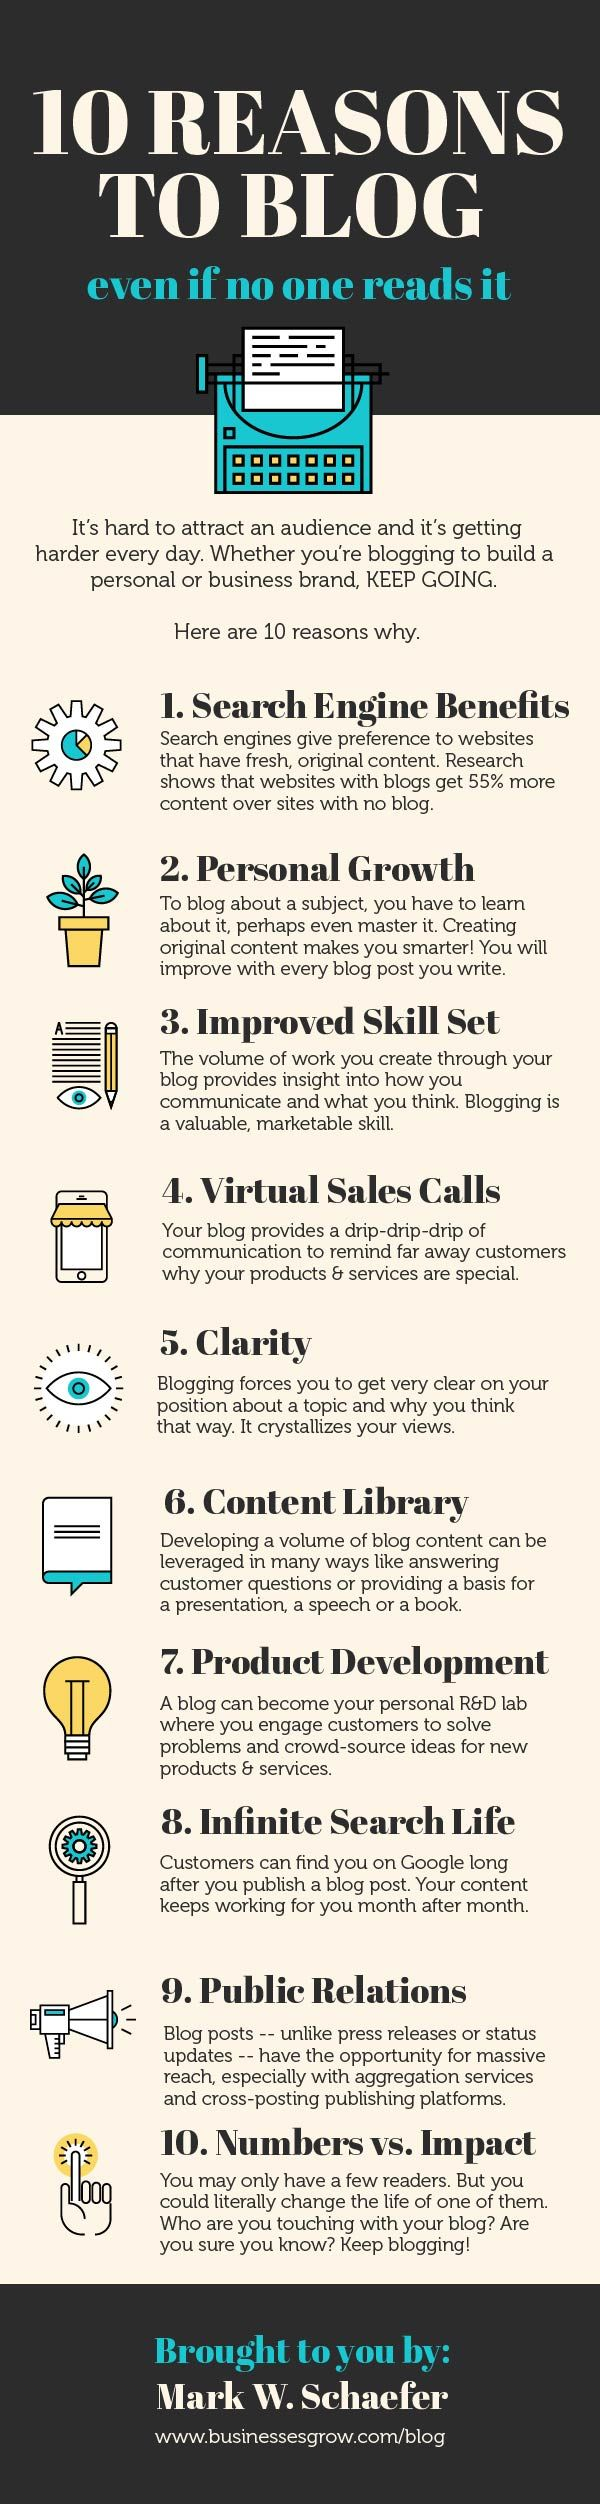 10 reasons to blog even if no one reads it. [infographic] by @MarkWSchaefer